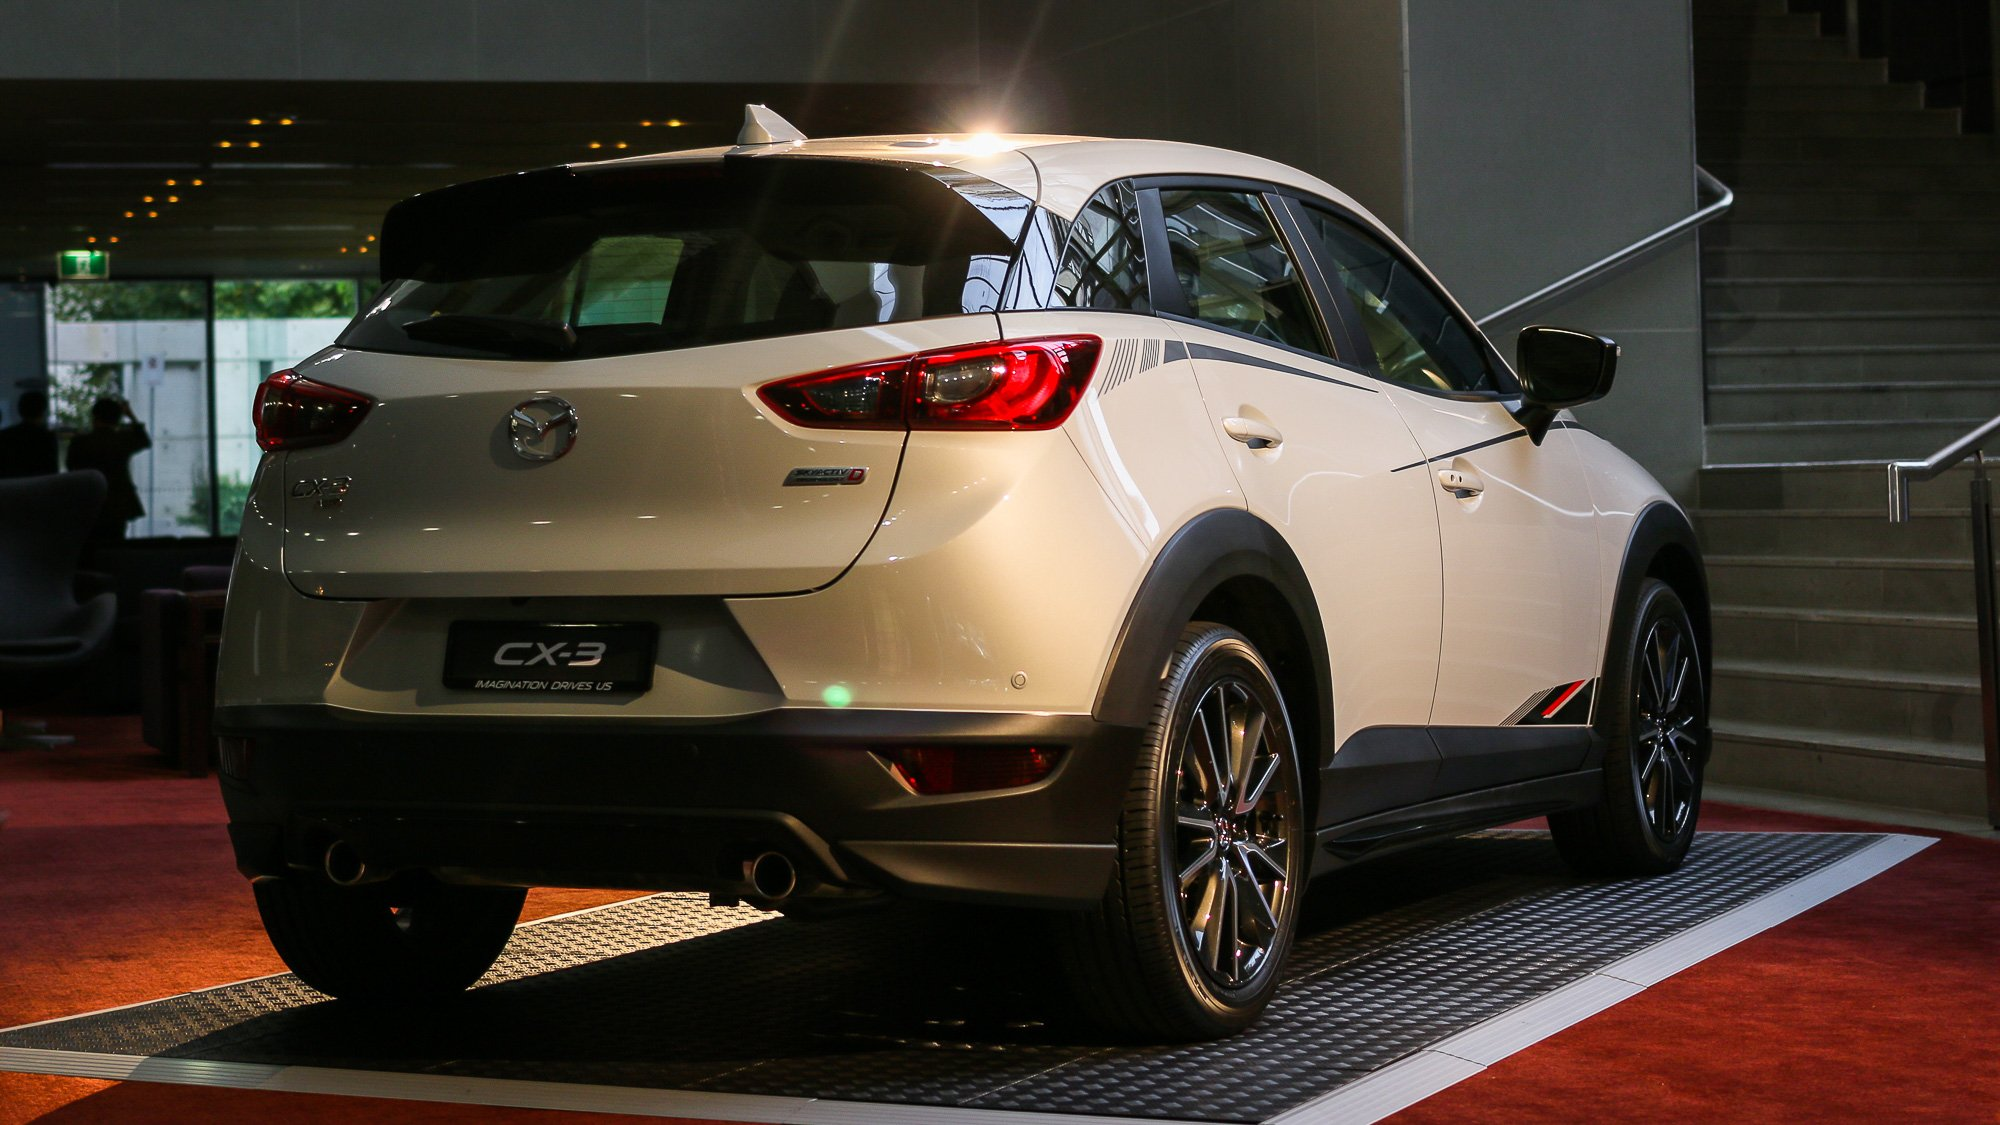 Mazda Cx 3 >> 2015 Mazda CX-3 Review | CarAdvice